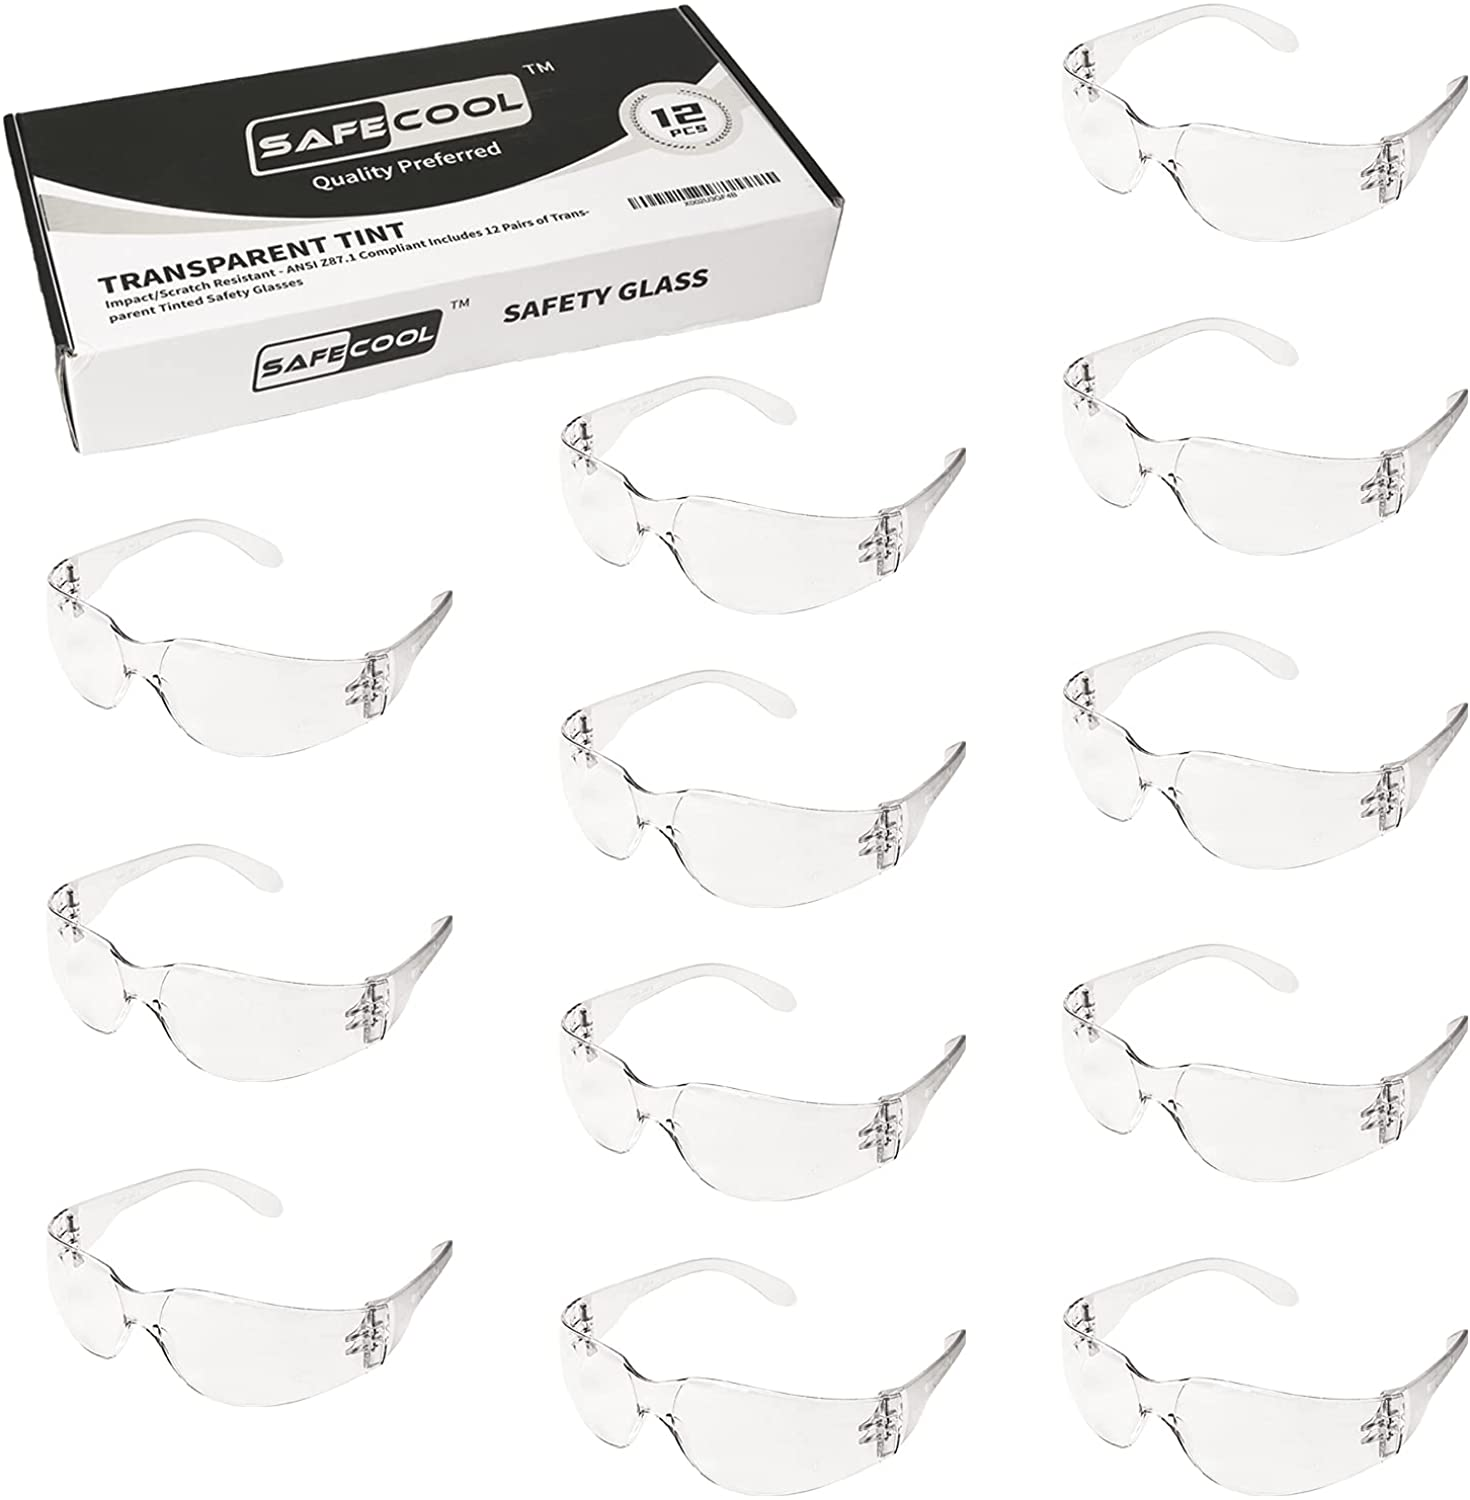 SAFECOOL Safety In a popularity Glasses Protective Eyewear service